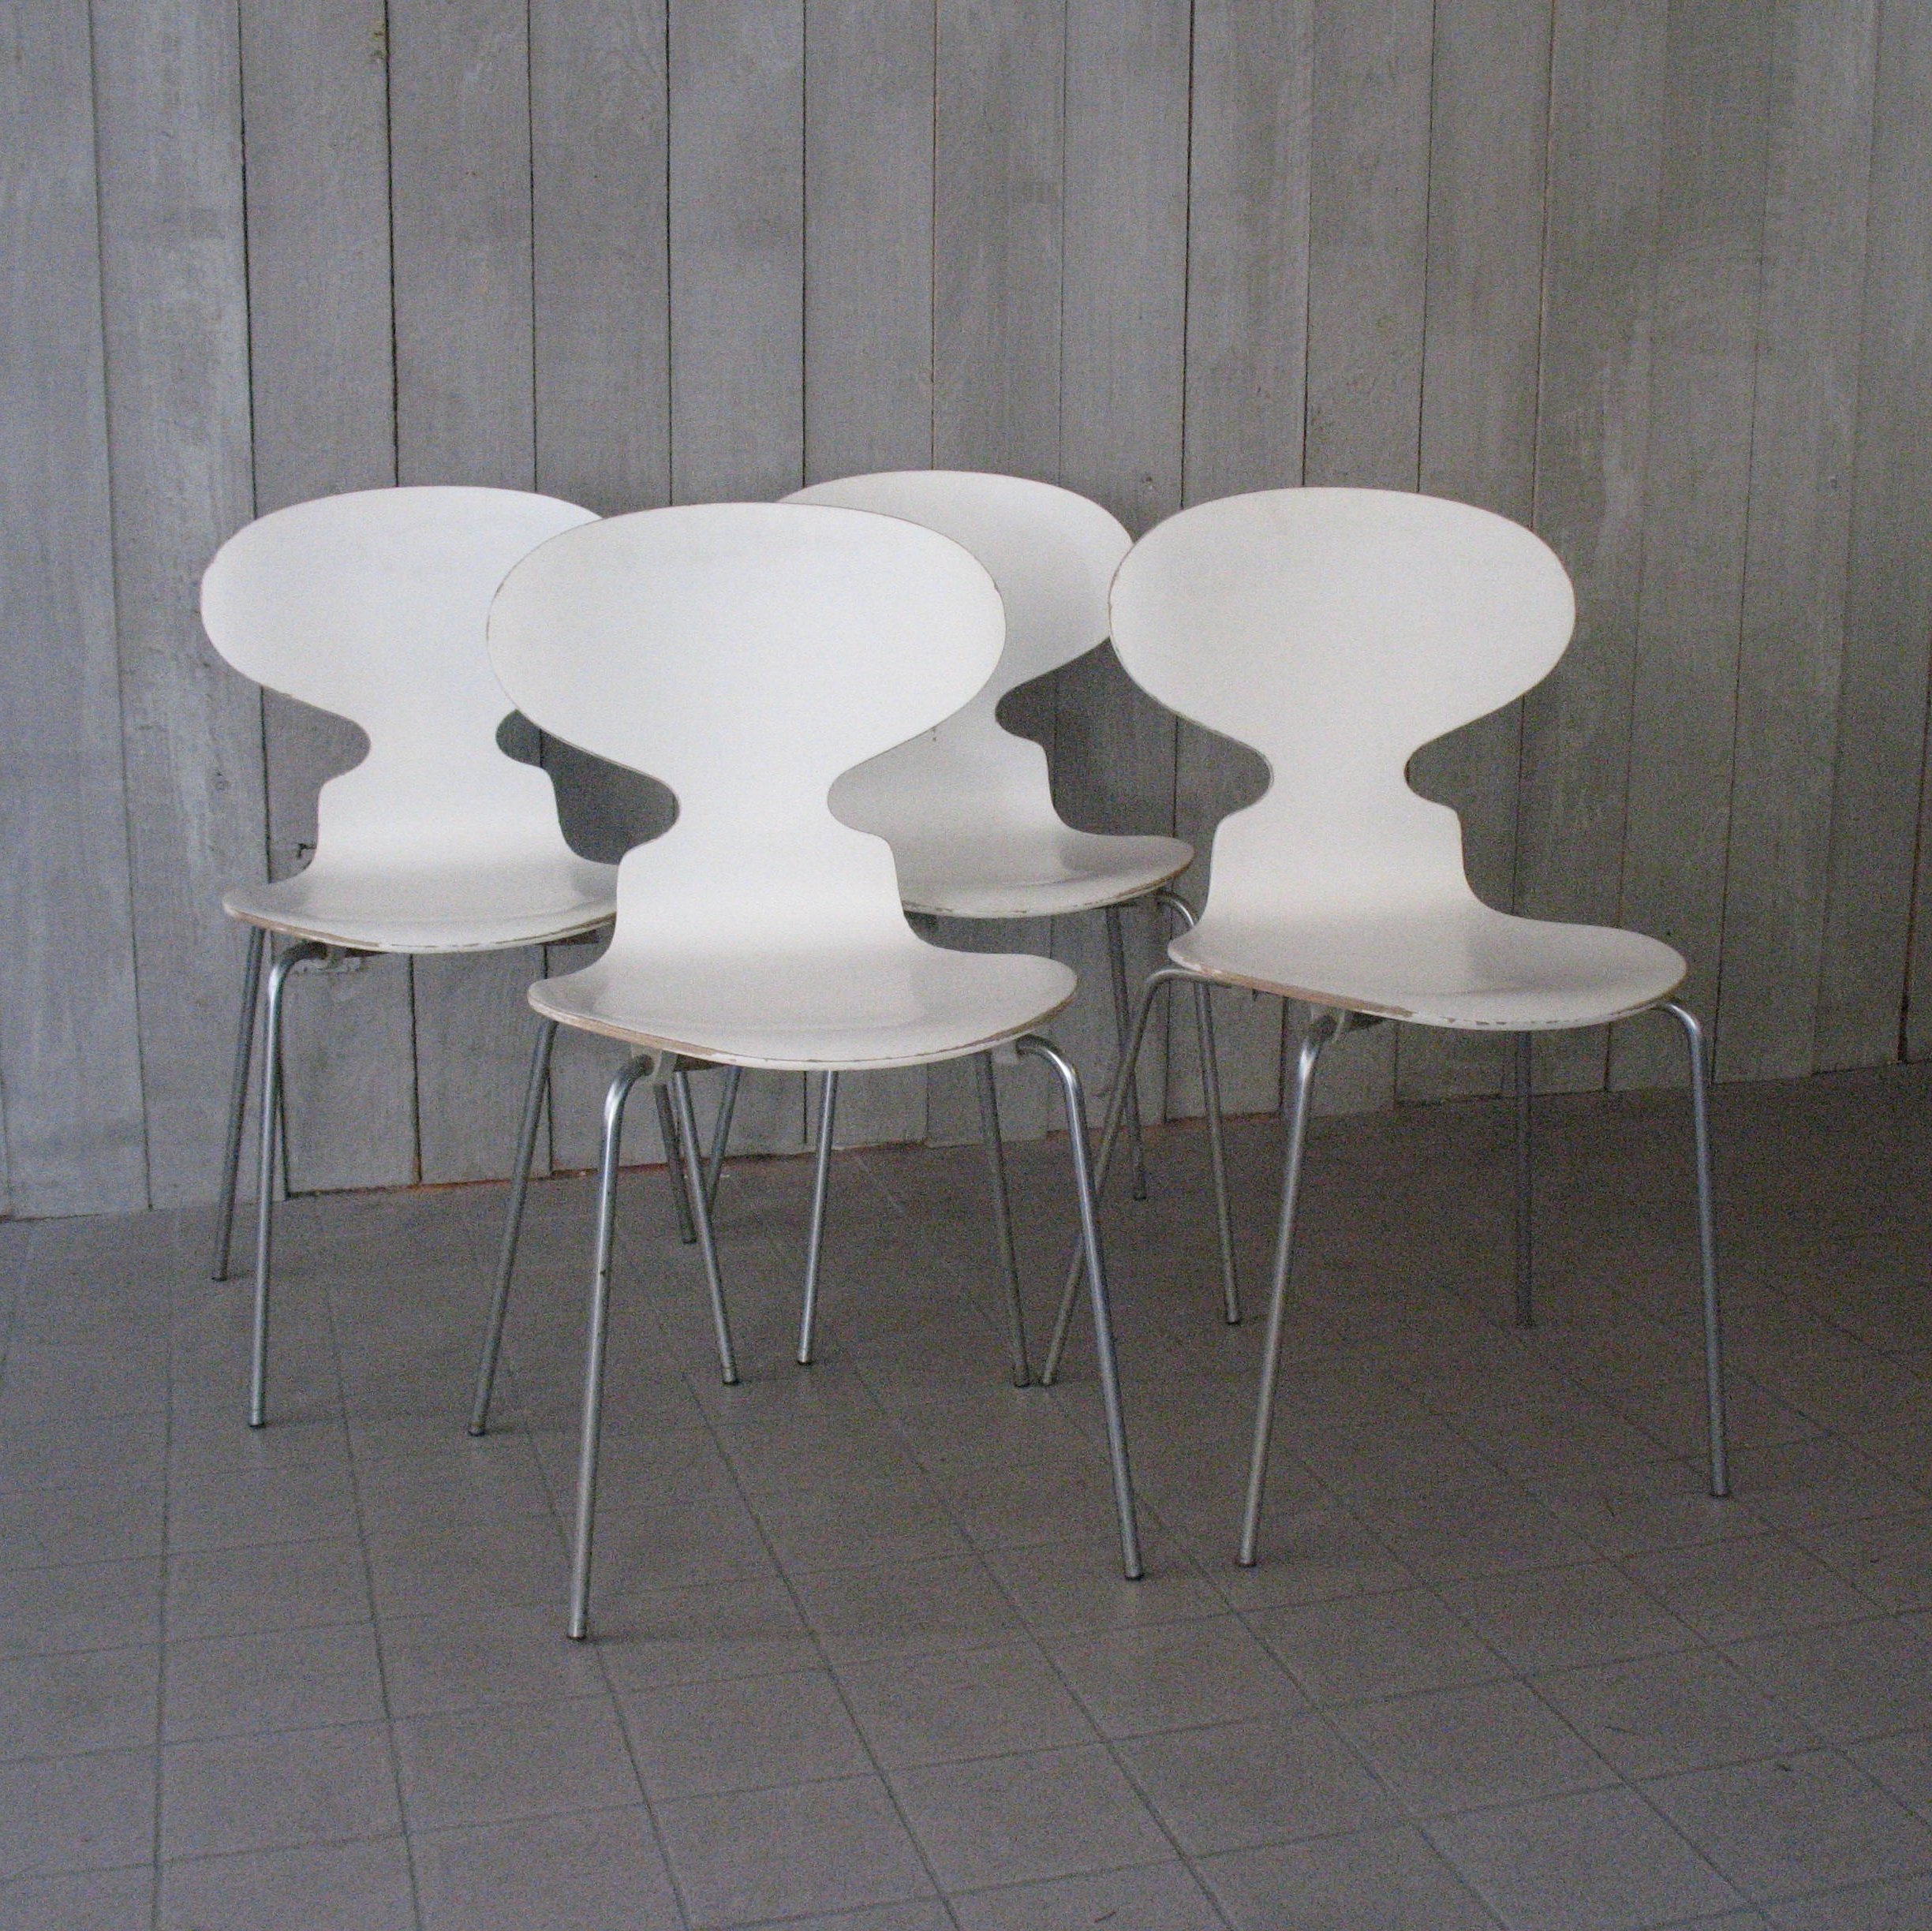 4 X Model 3100 Ant Dinner Chair By Arne Jacobsen For Fritz Hansen, 1970s